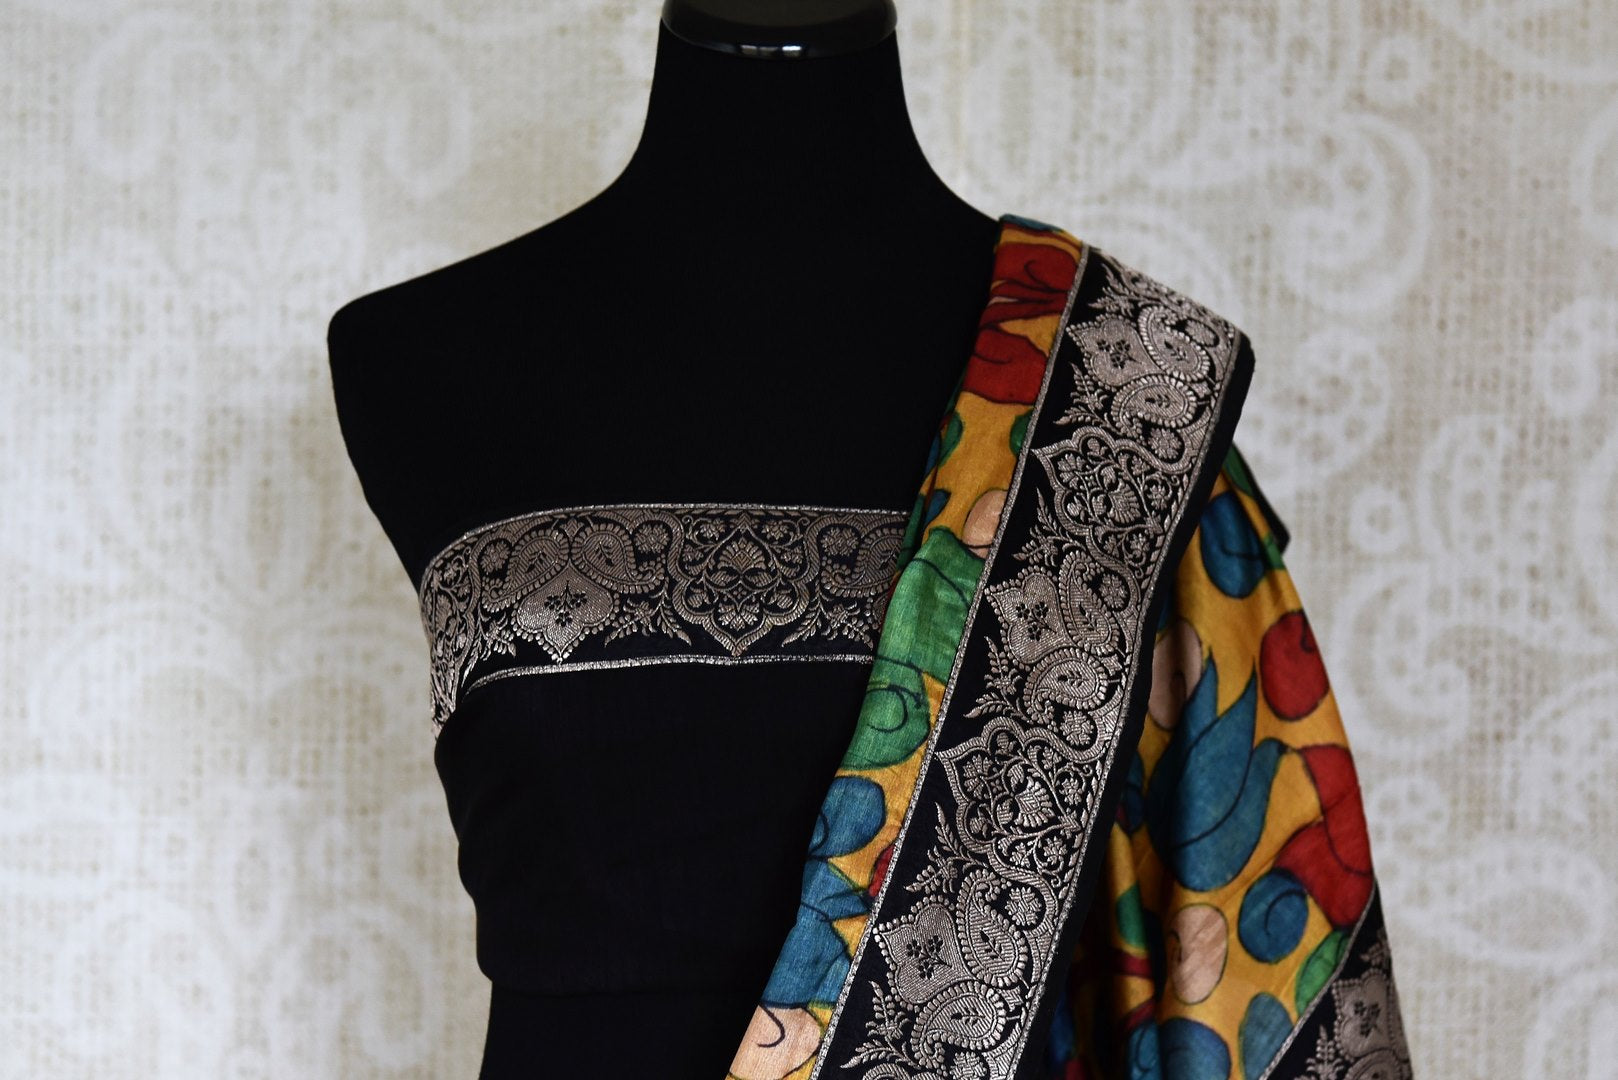 Buy yellow tussar Kalamkari saree online in USA with Banarasi border from Pure Elegance. Let your ethnic style be one of a kind with an exquisite variety of Indian handloom sarees, pure silk sarees, Bollywood sarees from our exclusive fashion store in USA.-blouse pallu